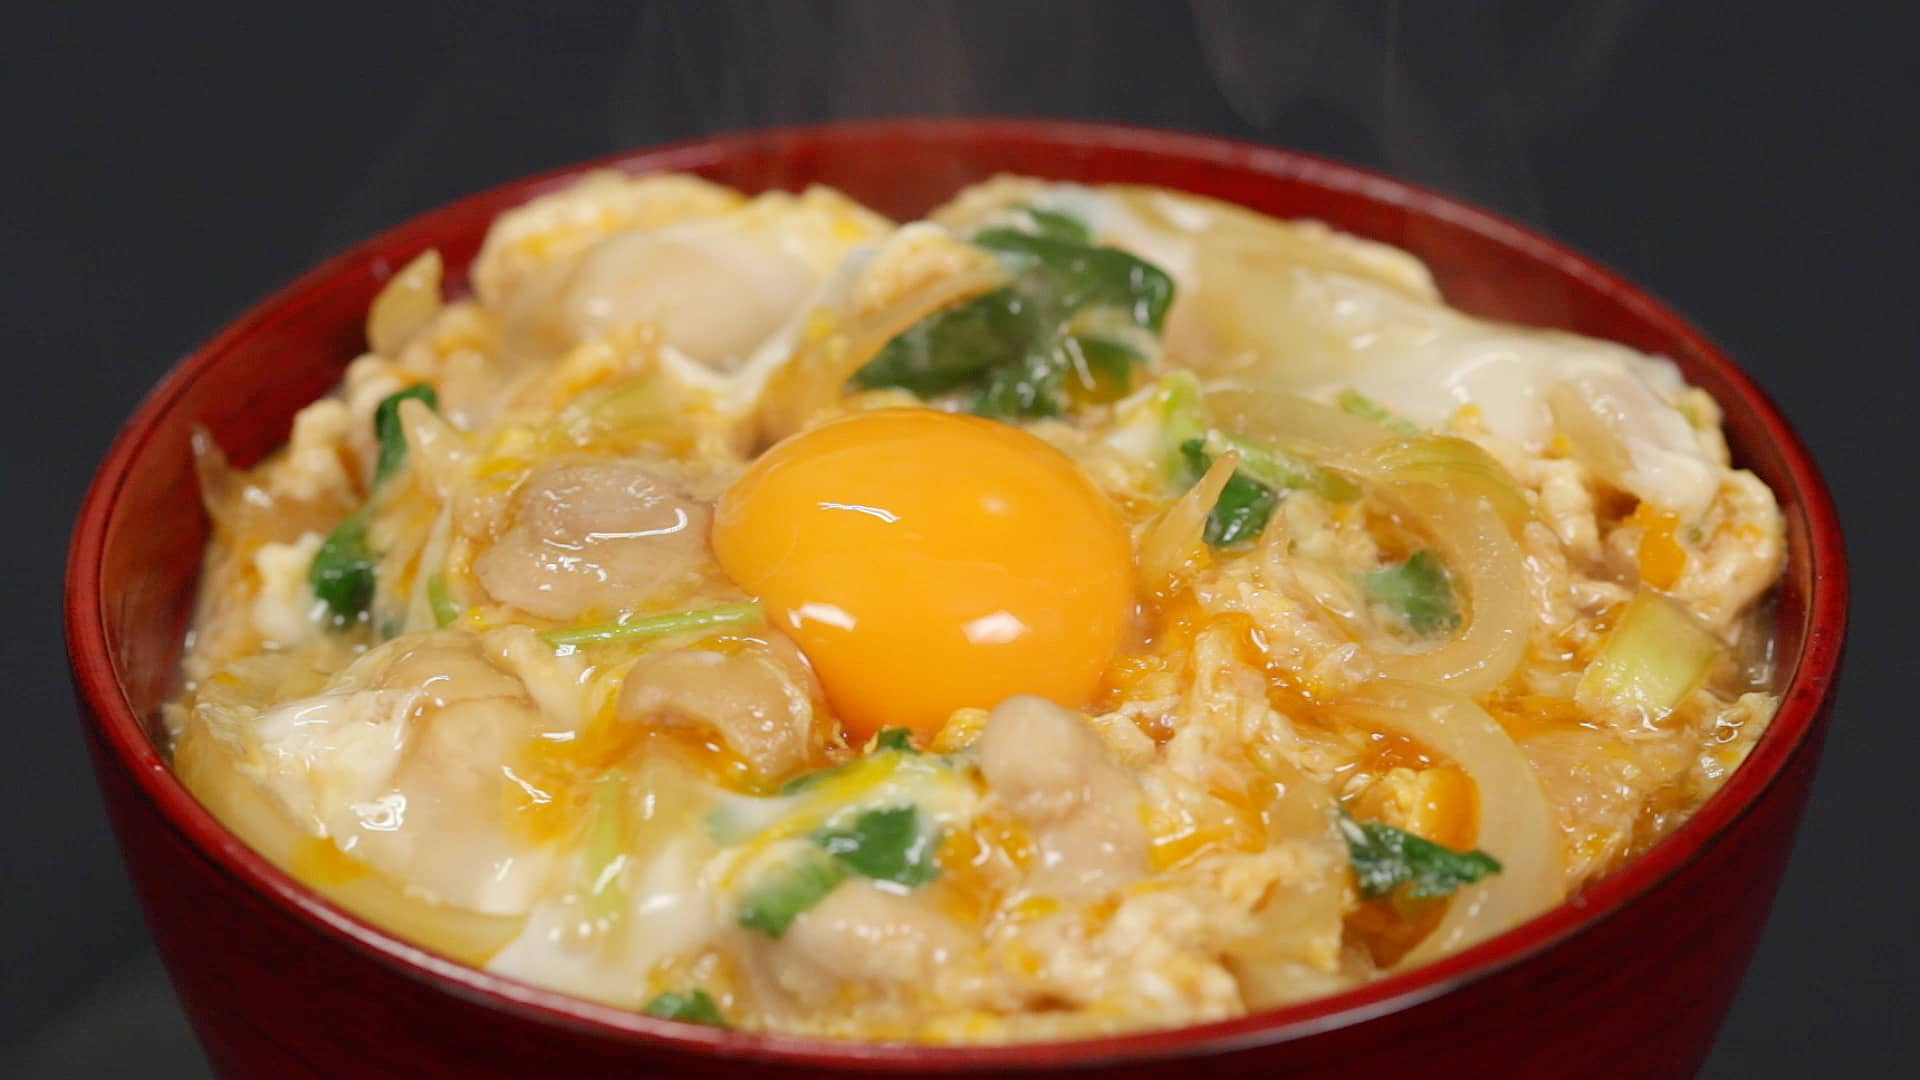 Oyakodon Recipe (Chicken and Egg Bowl) – Cooking with Dog